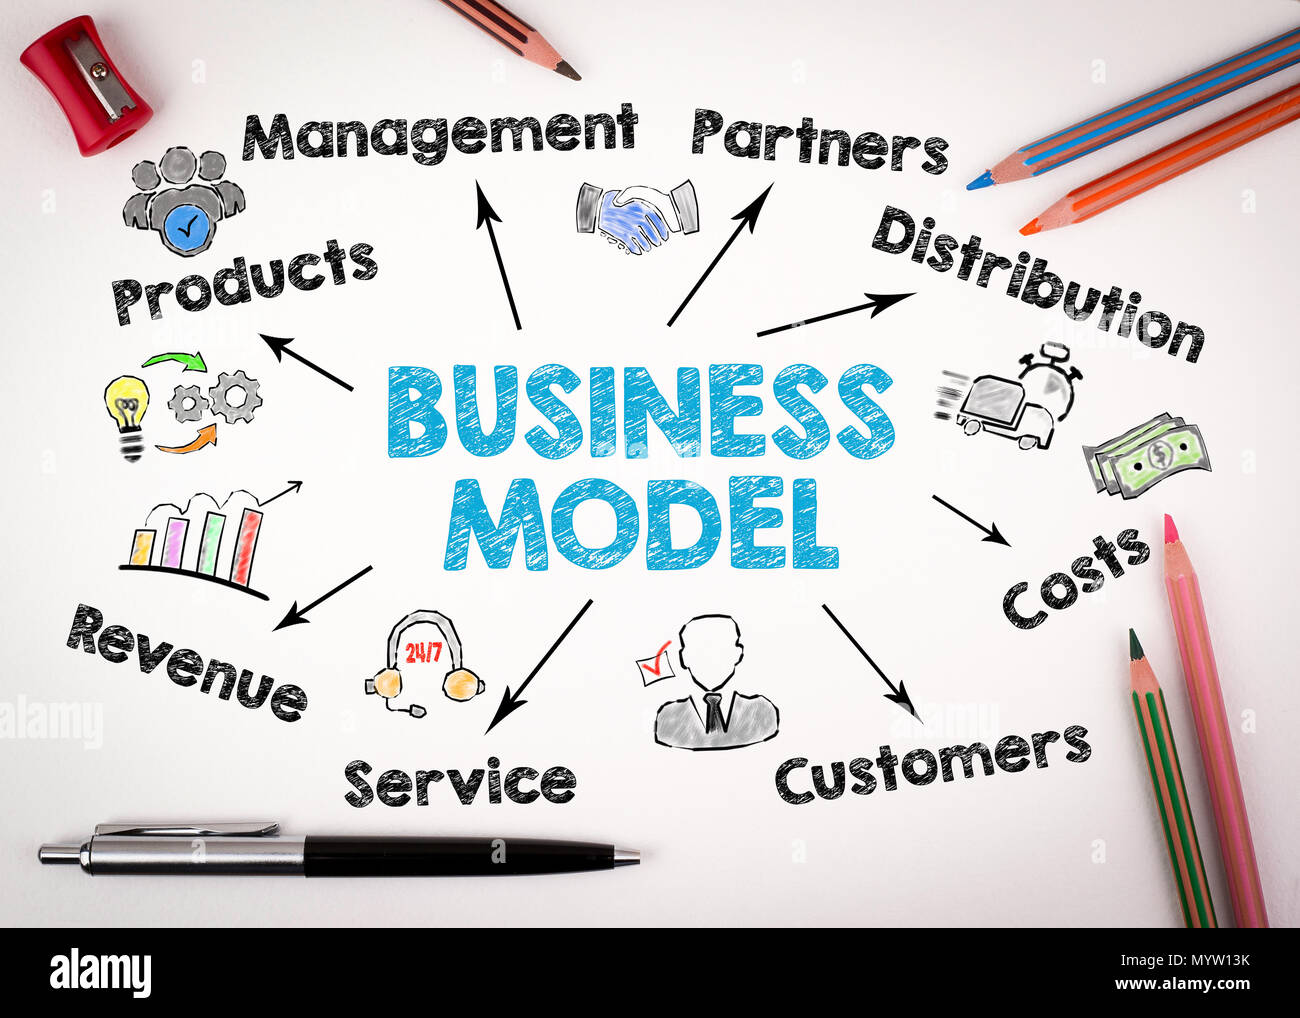 Business Model Concept. Chart with keywords and icons - Stock Image